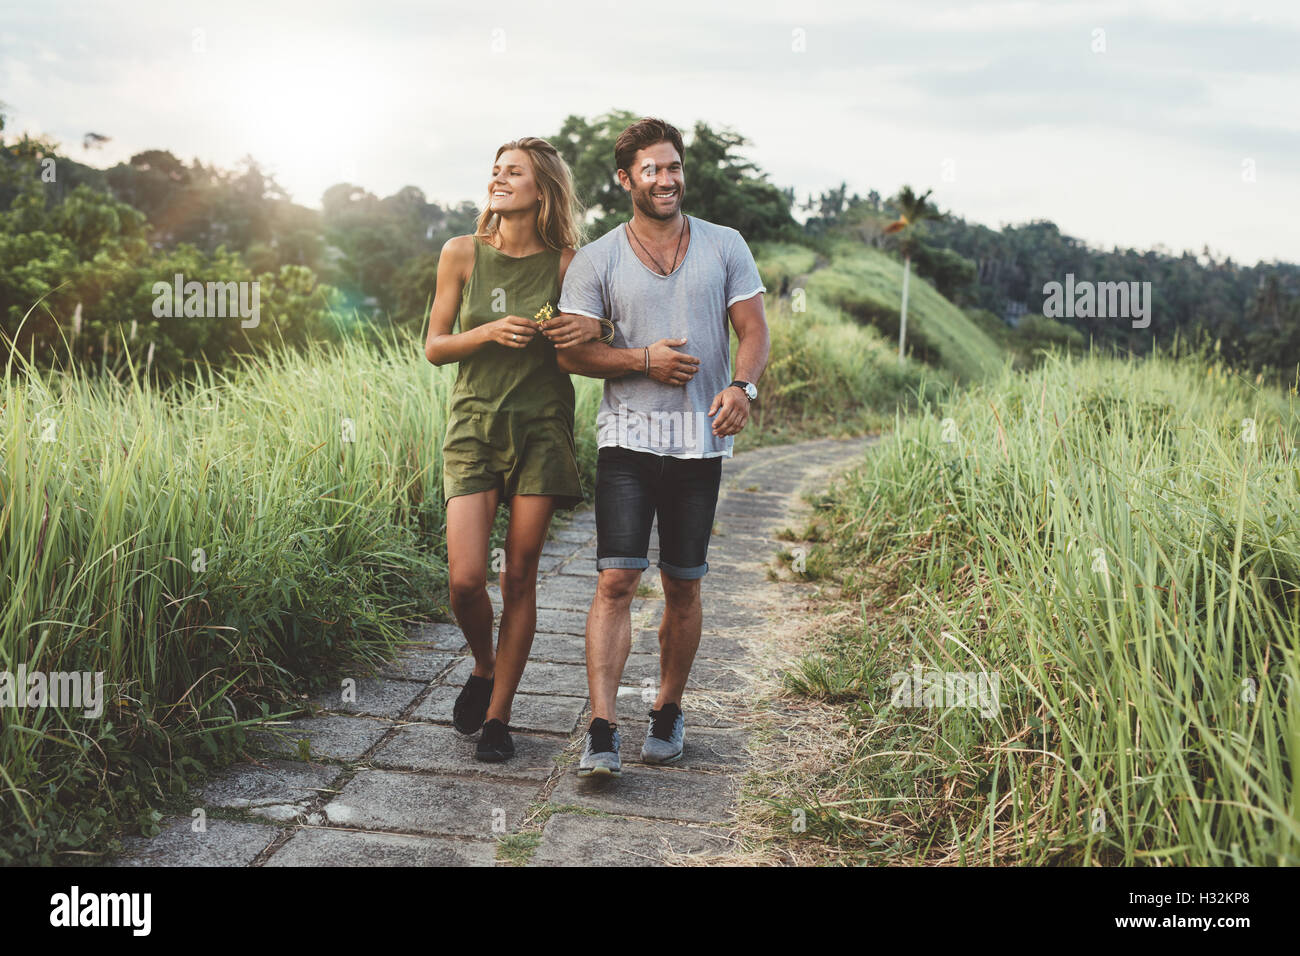 Outdoor shot of young couple in love walking on pathway through grass field. Man and woman walking along tall grass - Stock Image